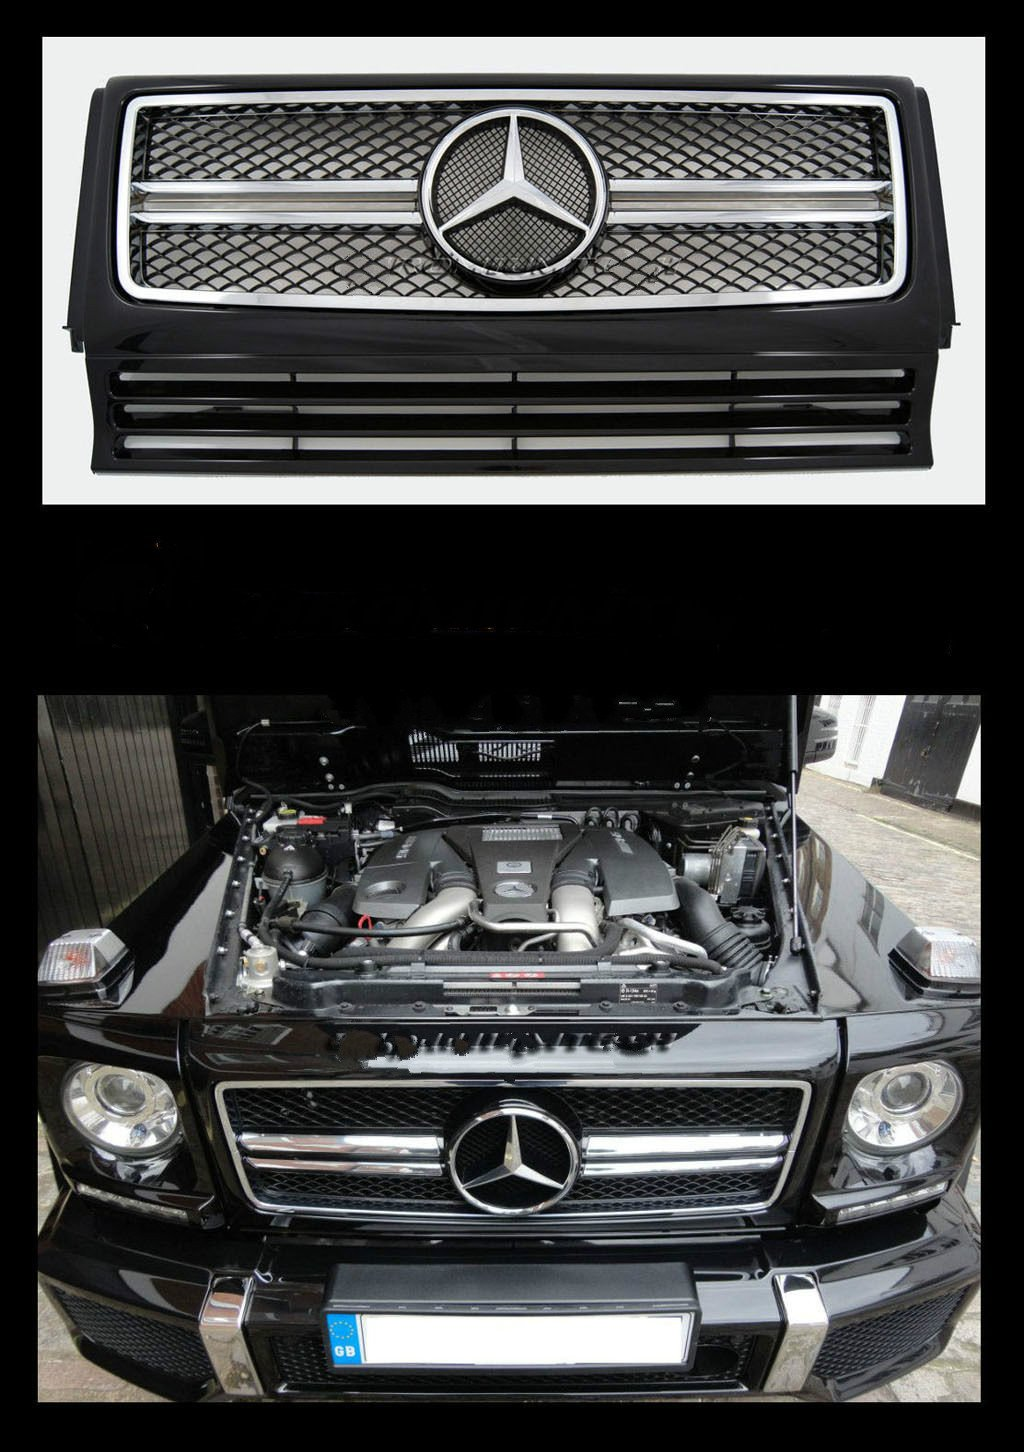 Gosweet 2002-2014 Glossy Black Mercedes BEN G-Class W463 W461 Air Grille Grill G55 G65 G500 G320 G400 AMG BLACK G63 Style Version US Fast Shipment